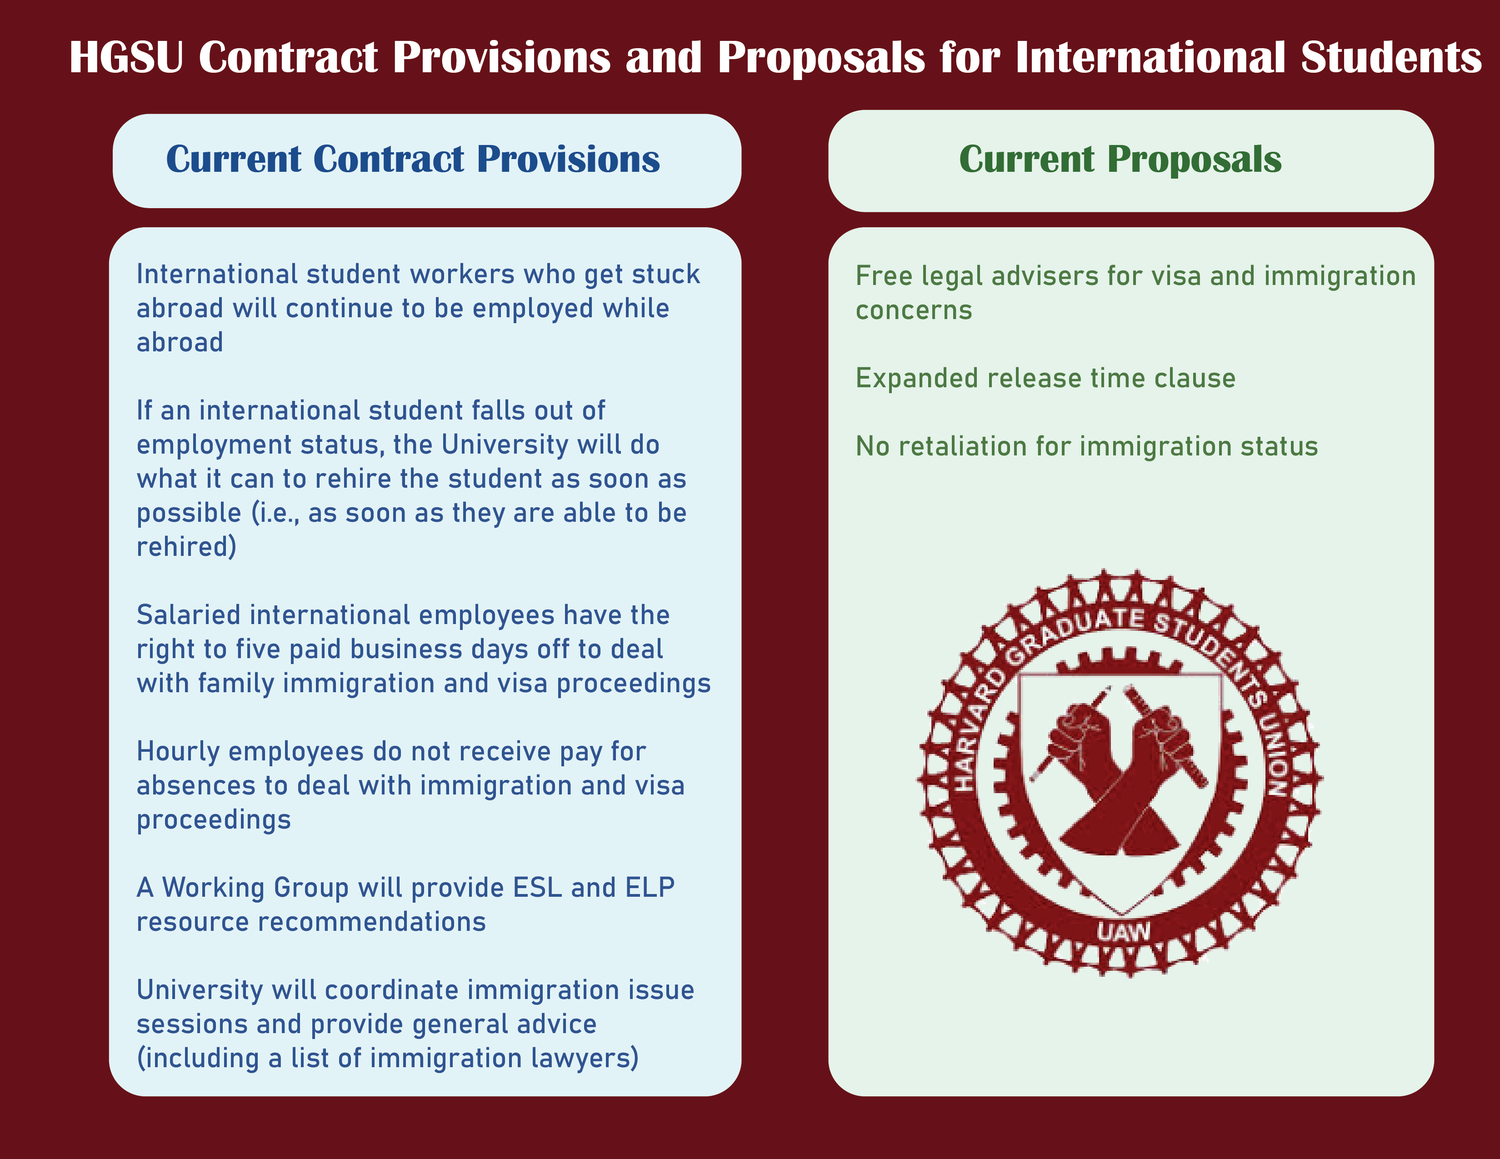 HGSU-UAW is advocating for greater rights for international student workers during negotiations with the University.